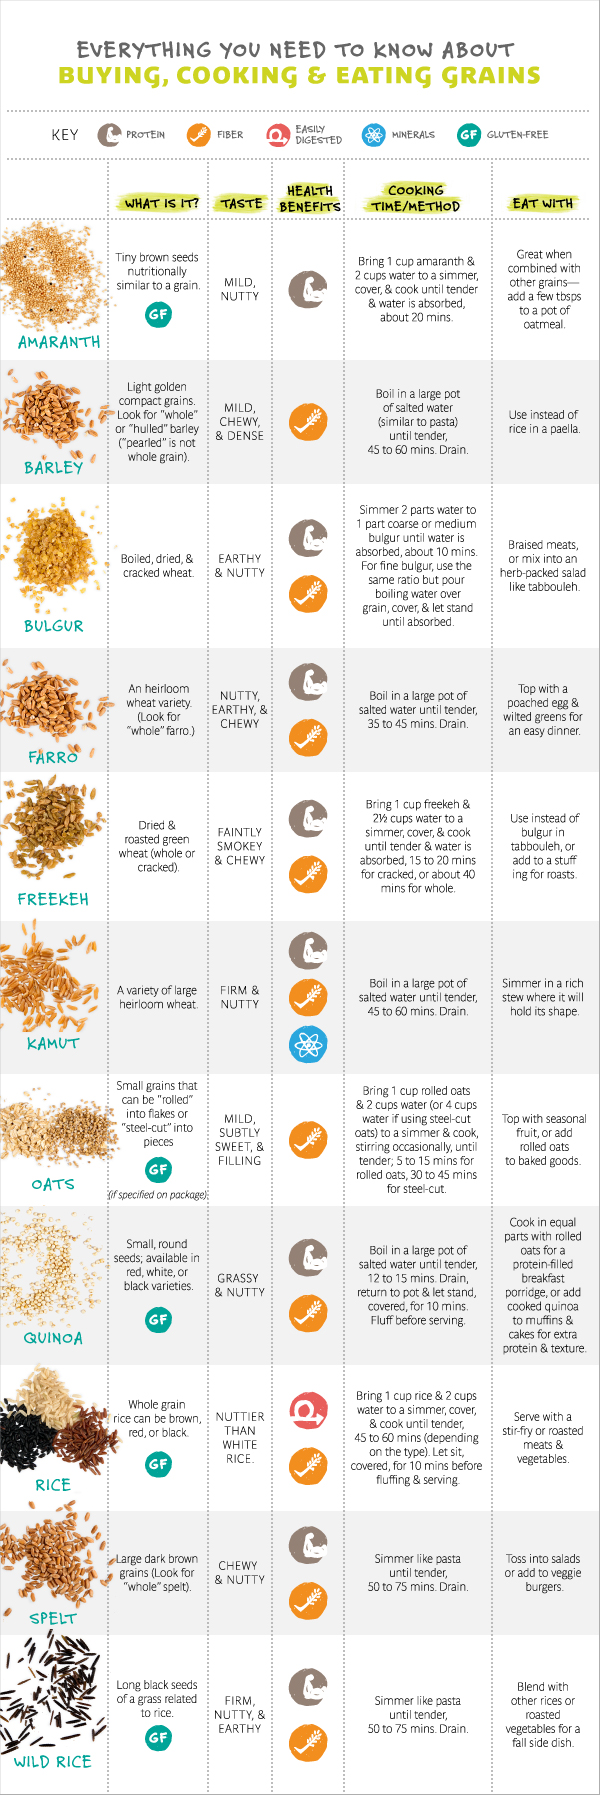 grains infographic